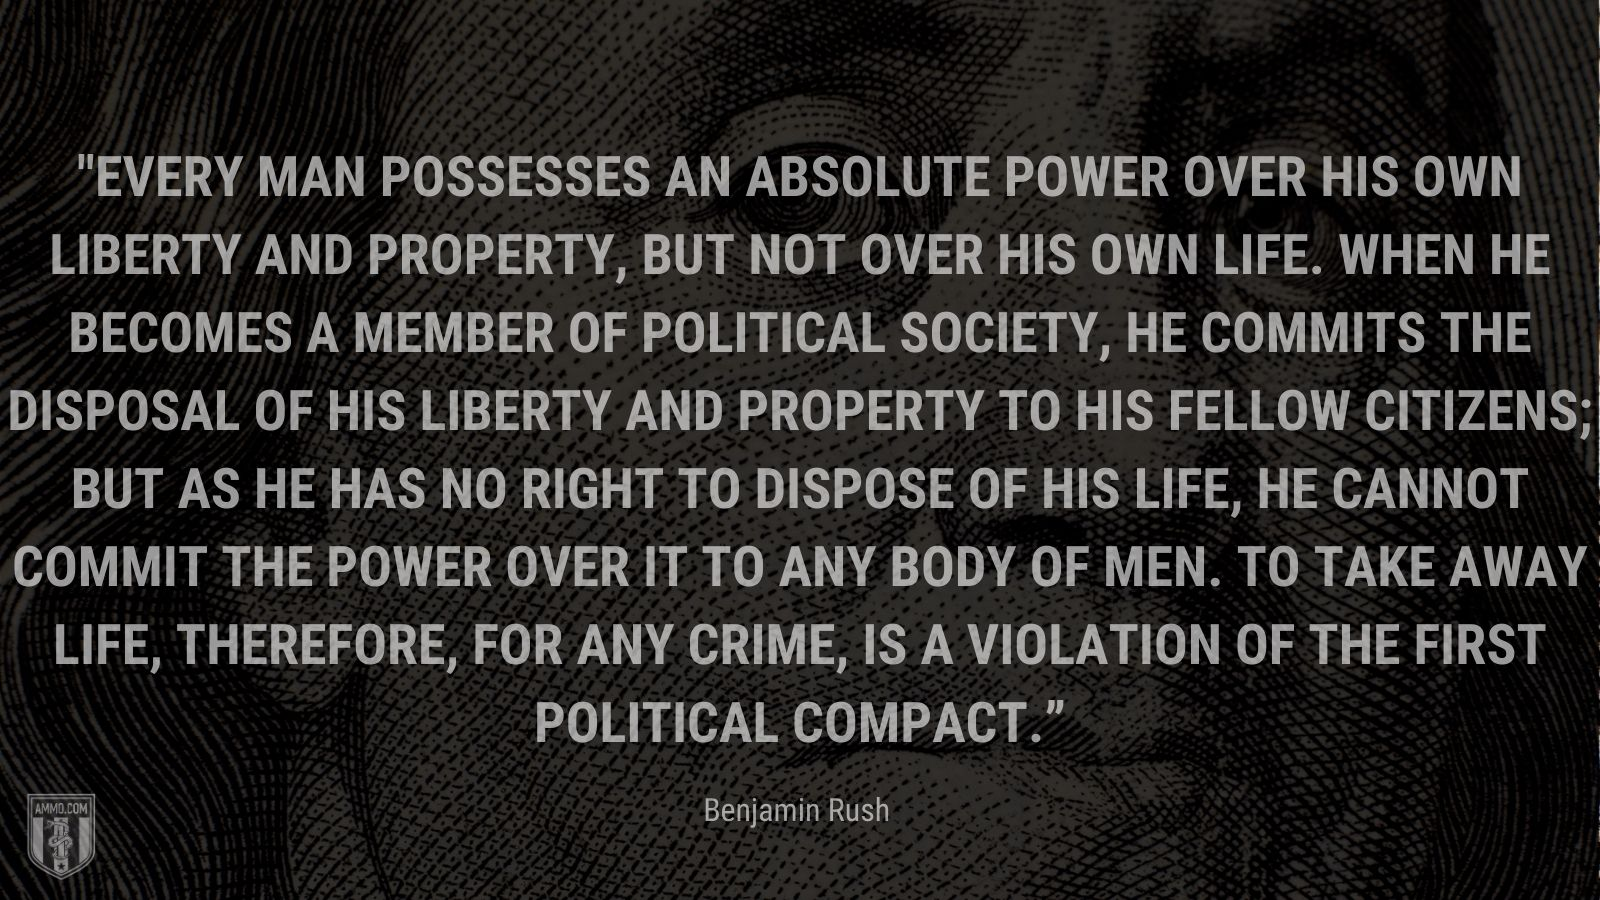 """""""Every man possesses an absolute power over his own liberty and property, but not over his own life. When he becomes a member of political society, he commits the disposal of his liberty and property to his fellow citizens; but as he has no right to dispose of his life, he cannot commit the power over it to any body of men. To take away life, therefore, for any crime, is a violation of the first political compact."""" - Benjamin Rush"""